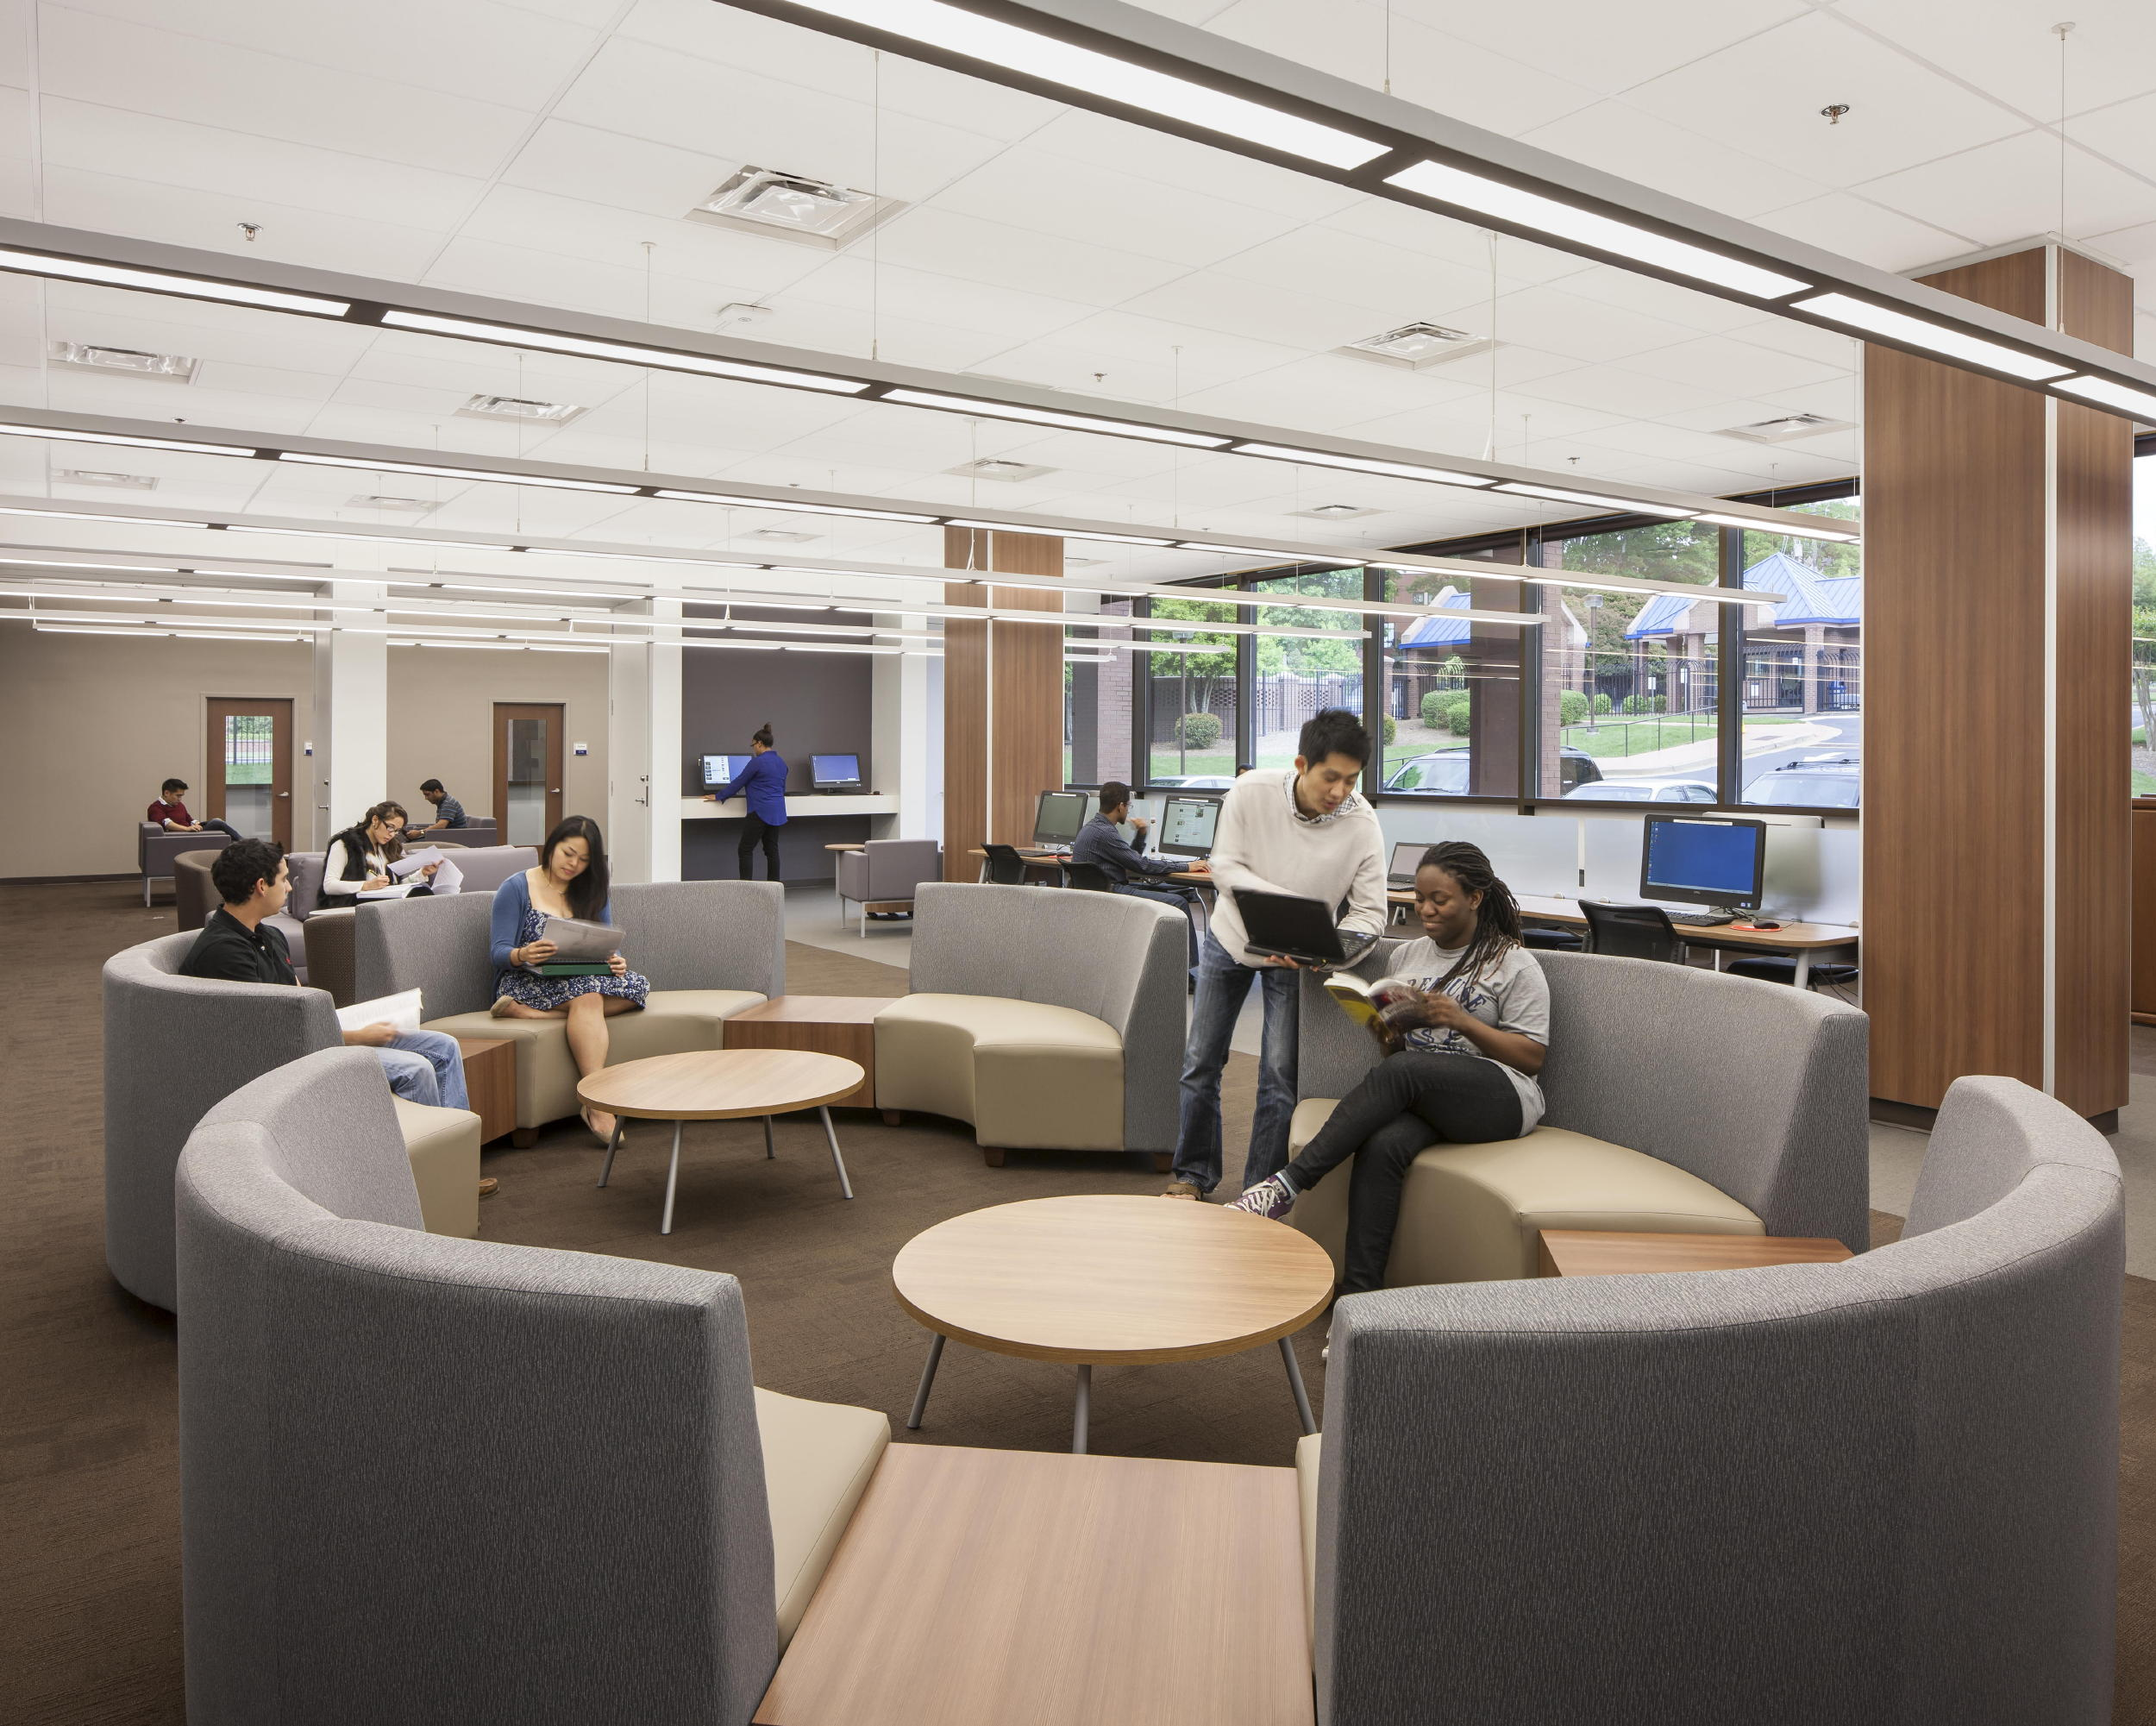 Morehouse School Of Medicine Library Renovation